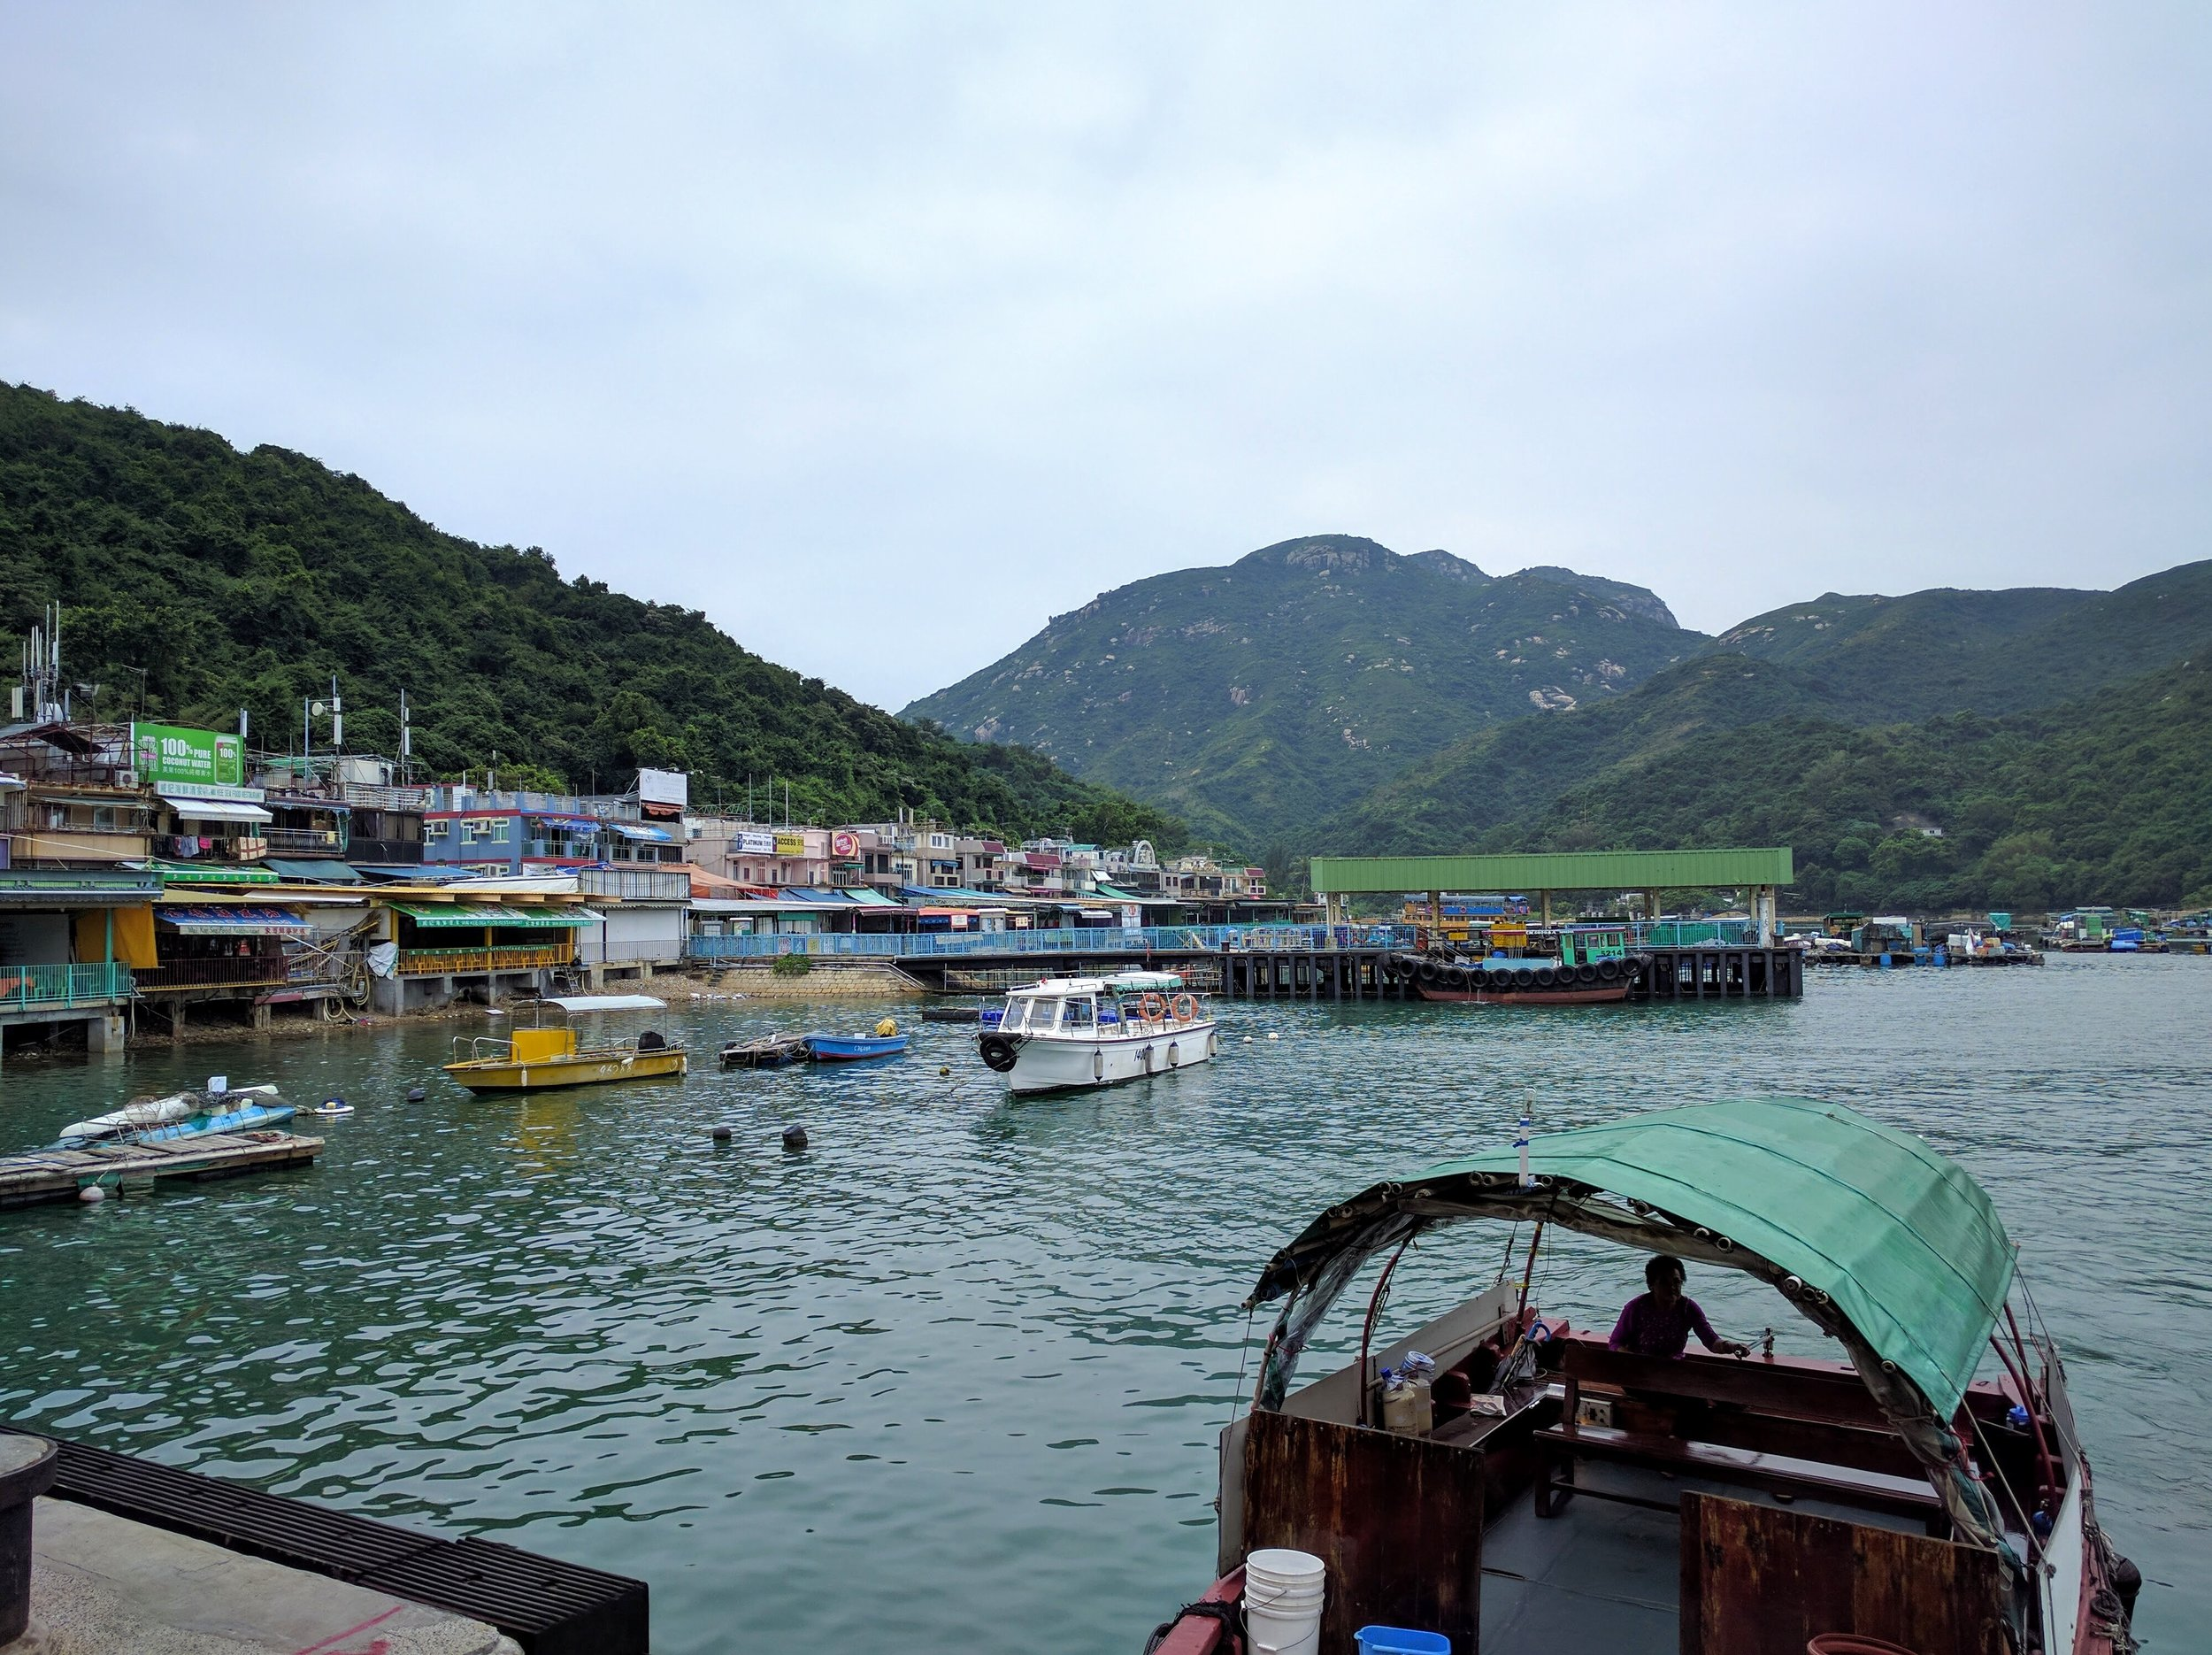 Couldn't resist another fishing village so visiting Lamma Island for the day // Hong Kong